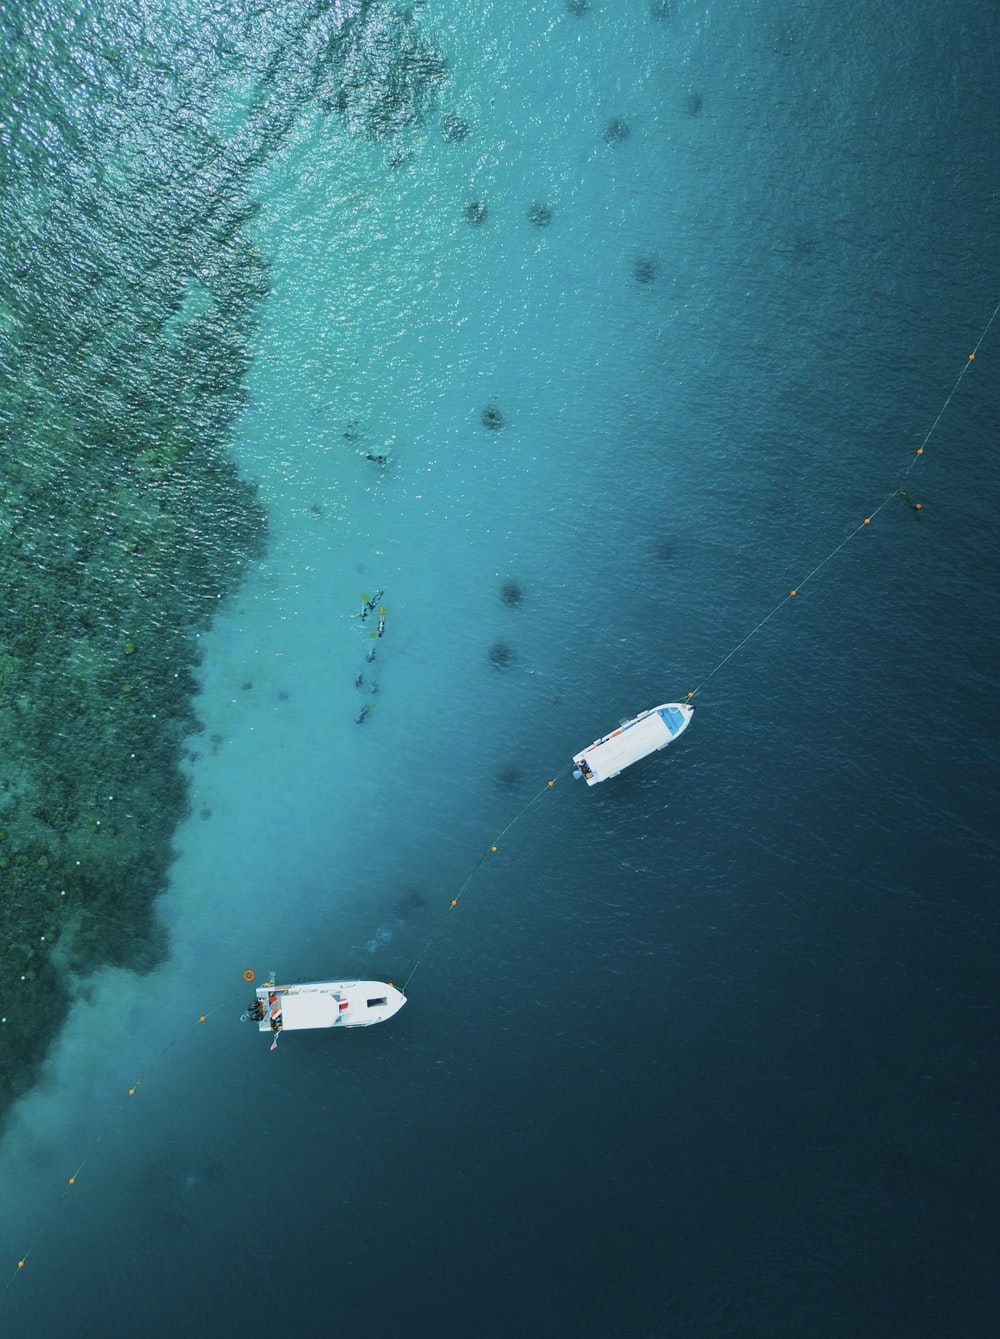 aerial photography of two white motor boats on calm body of sea